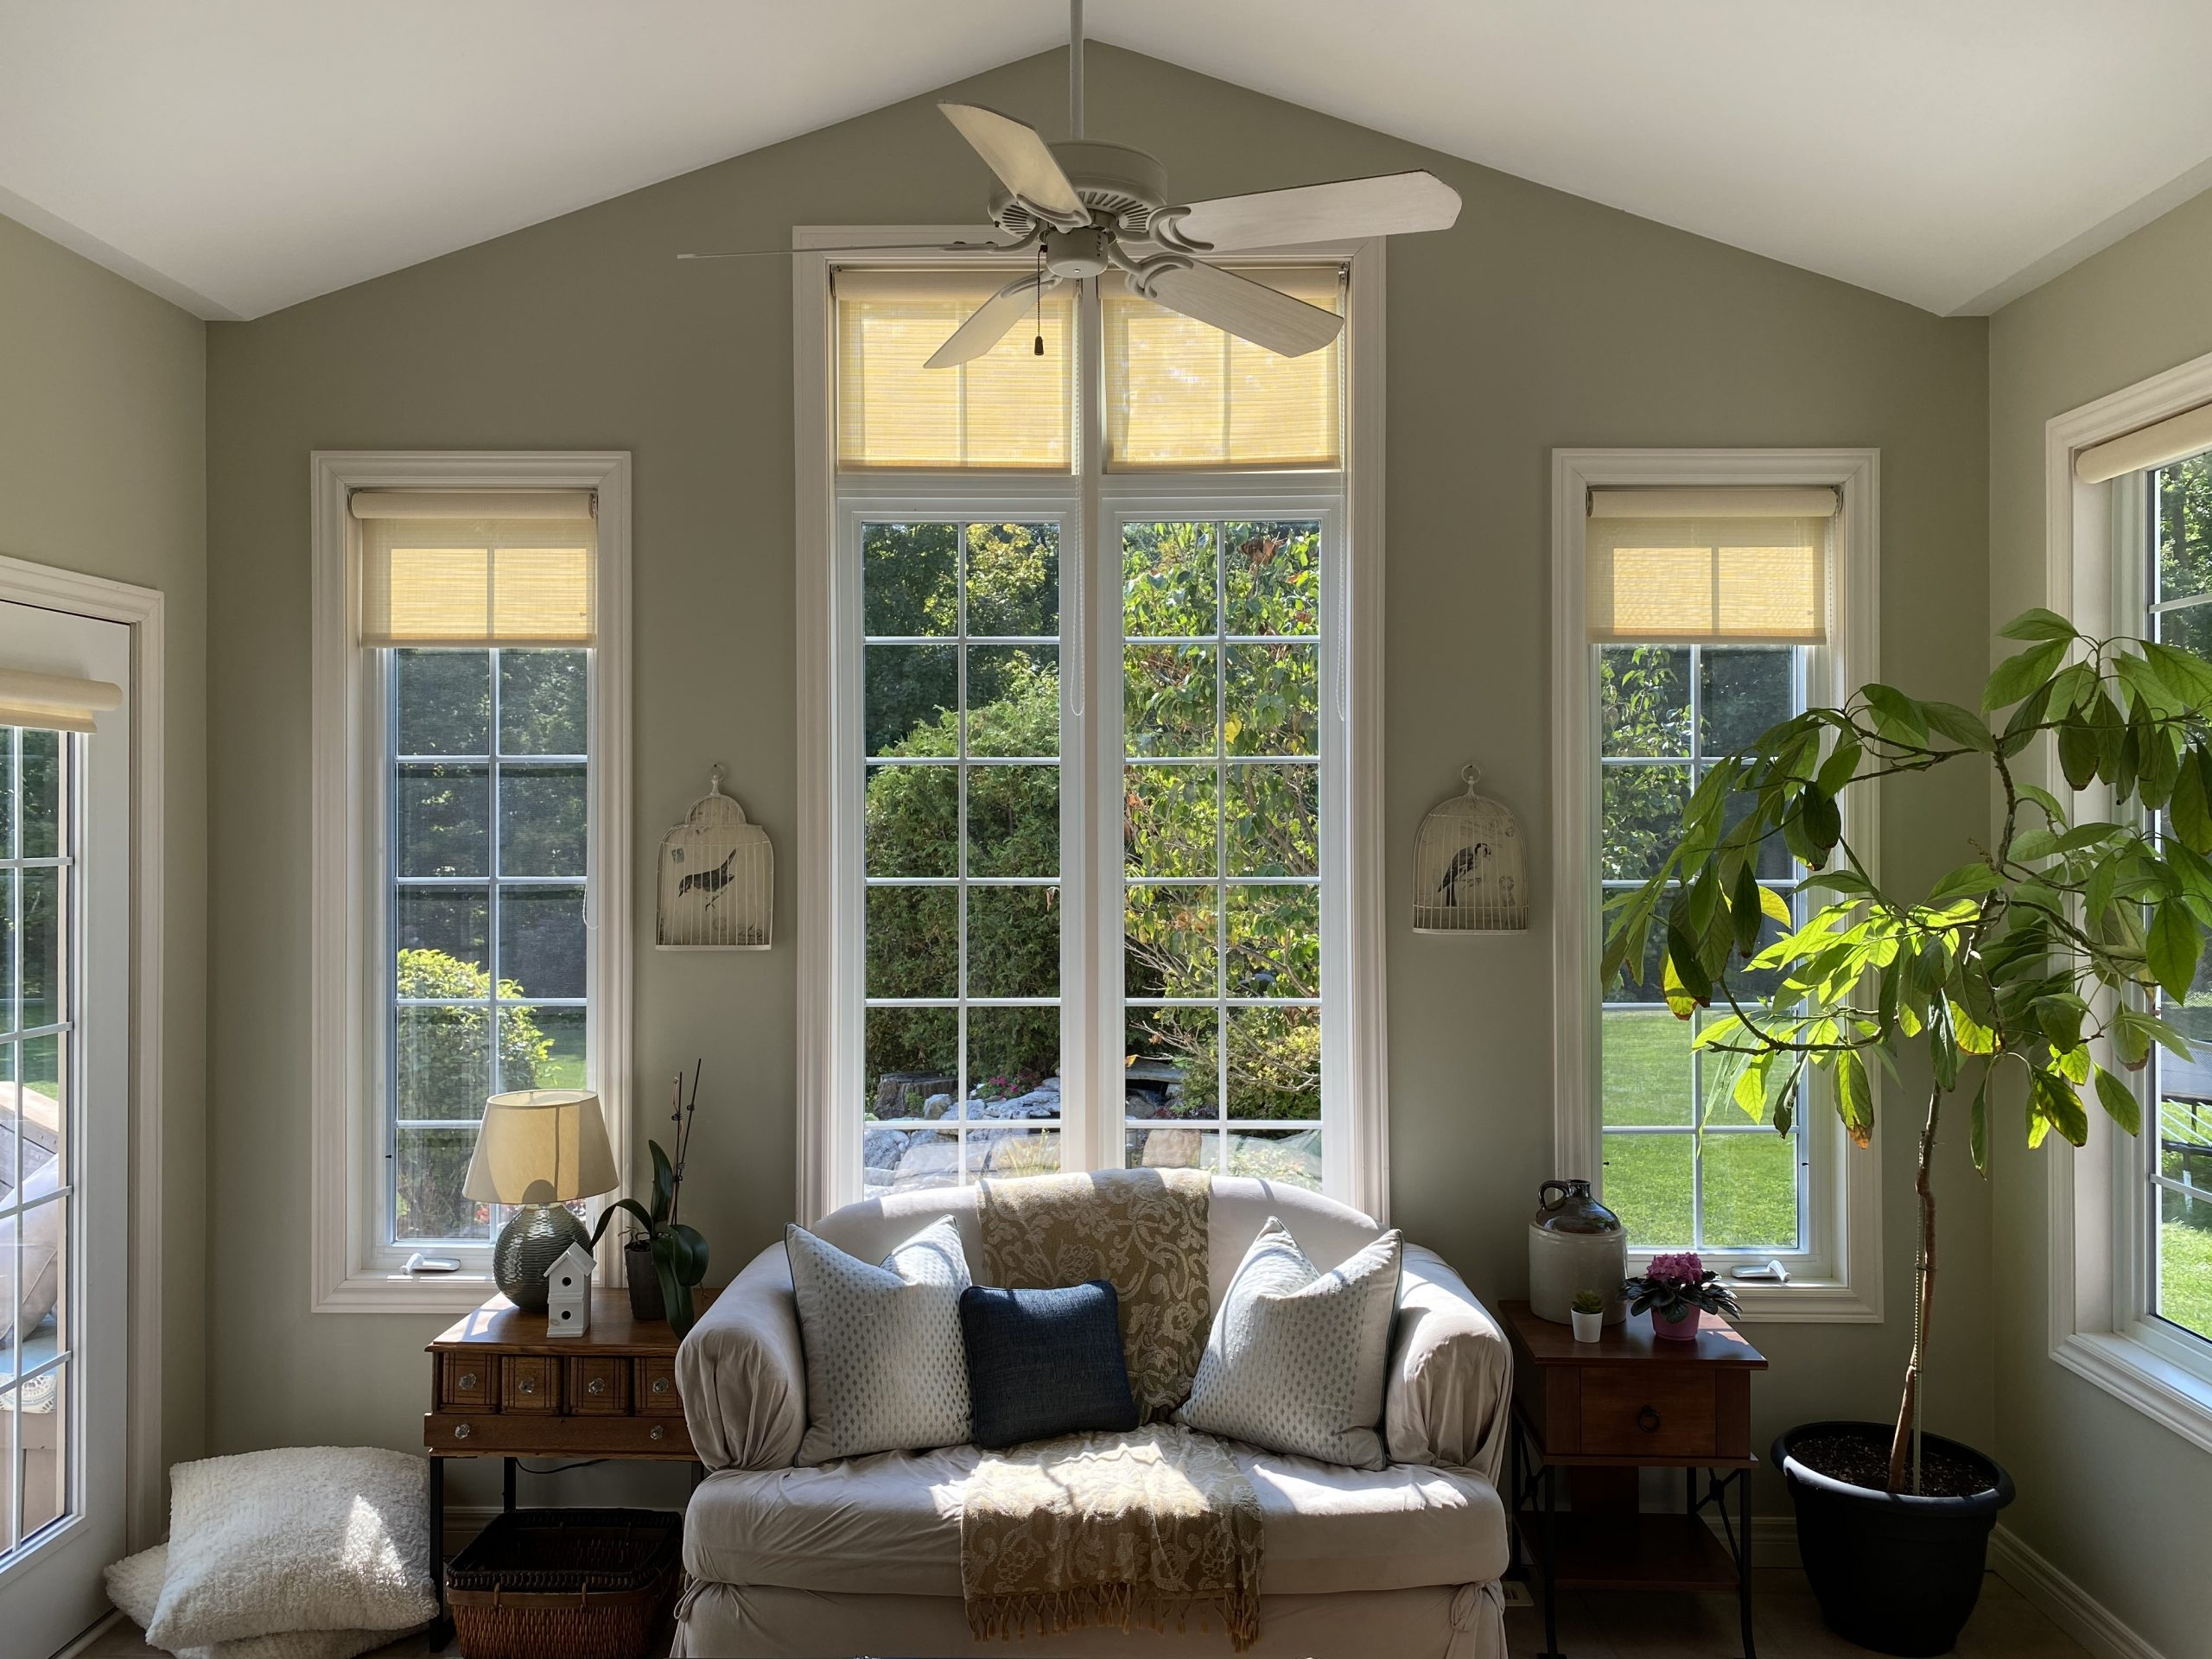 Transitional lakeside retreat sunroom in Chatham-Kent with custom drapery and colourful accents